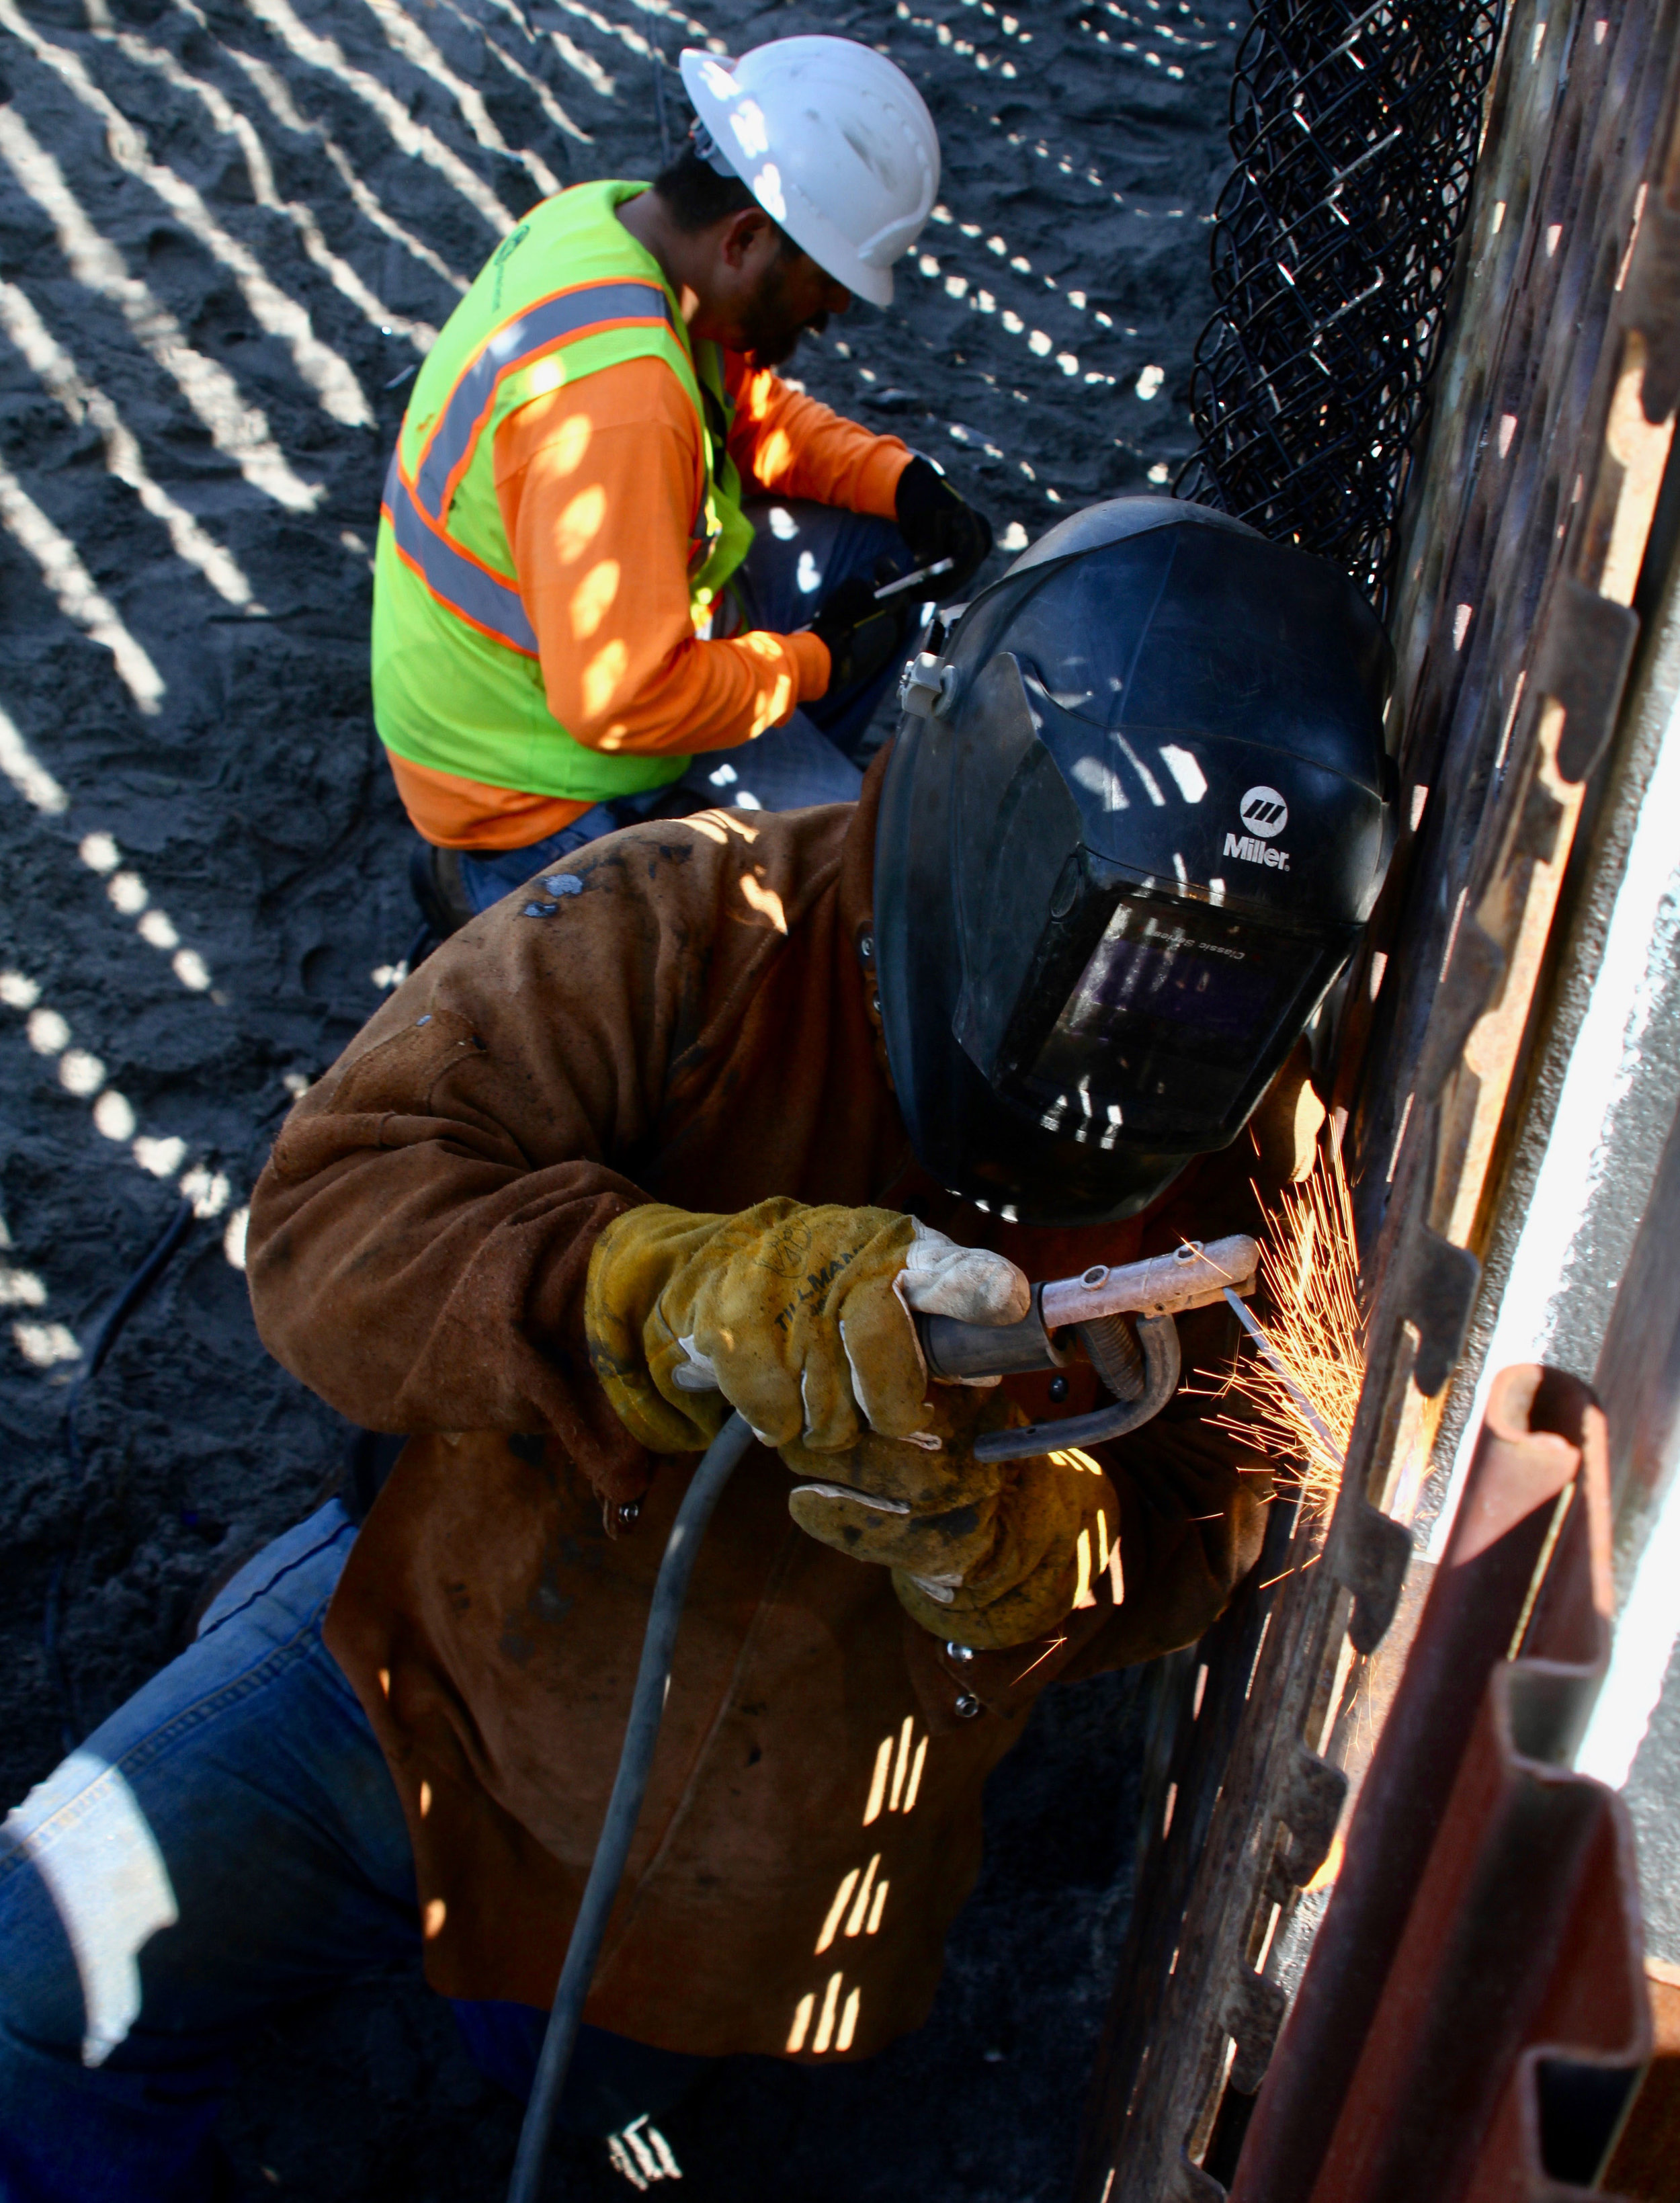 "A masked Cerrudo Services construction worker welding a piece of rusted steel onto the border wall in Playas de Tijuana while another worker prepares to also continue the second day of construction along the wall on Saturday, March 16, 2019 in Tijuana, Mexico. Cerrudo Services is a ""construction and service contractor specializing in federal government contracting,"" according to the company's website. The construction on this section of the border wall comes after two different incidents of significantly large groups of migrants crossing through the border wall between gaps and openings on Thursday, March 14 and on Friday, March 15.( Ryanne Mena / The Corsair )"